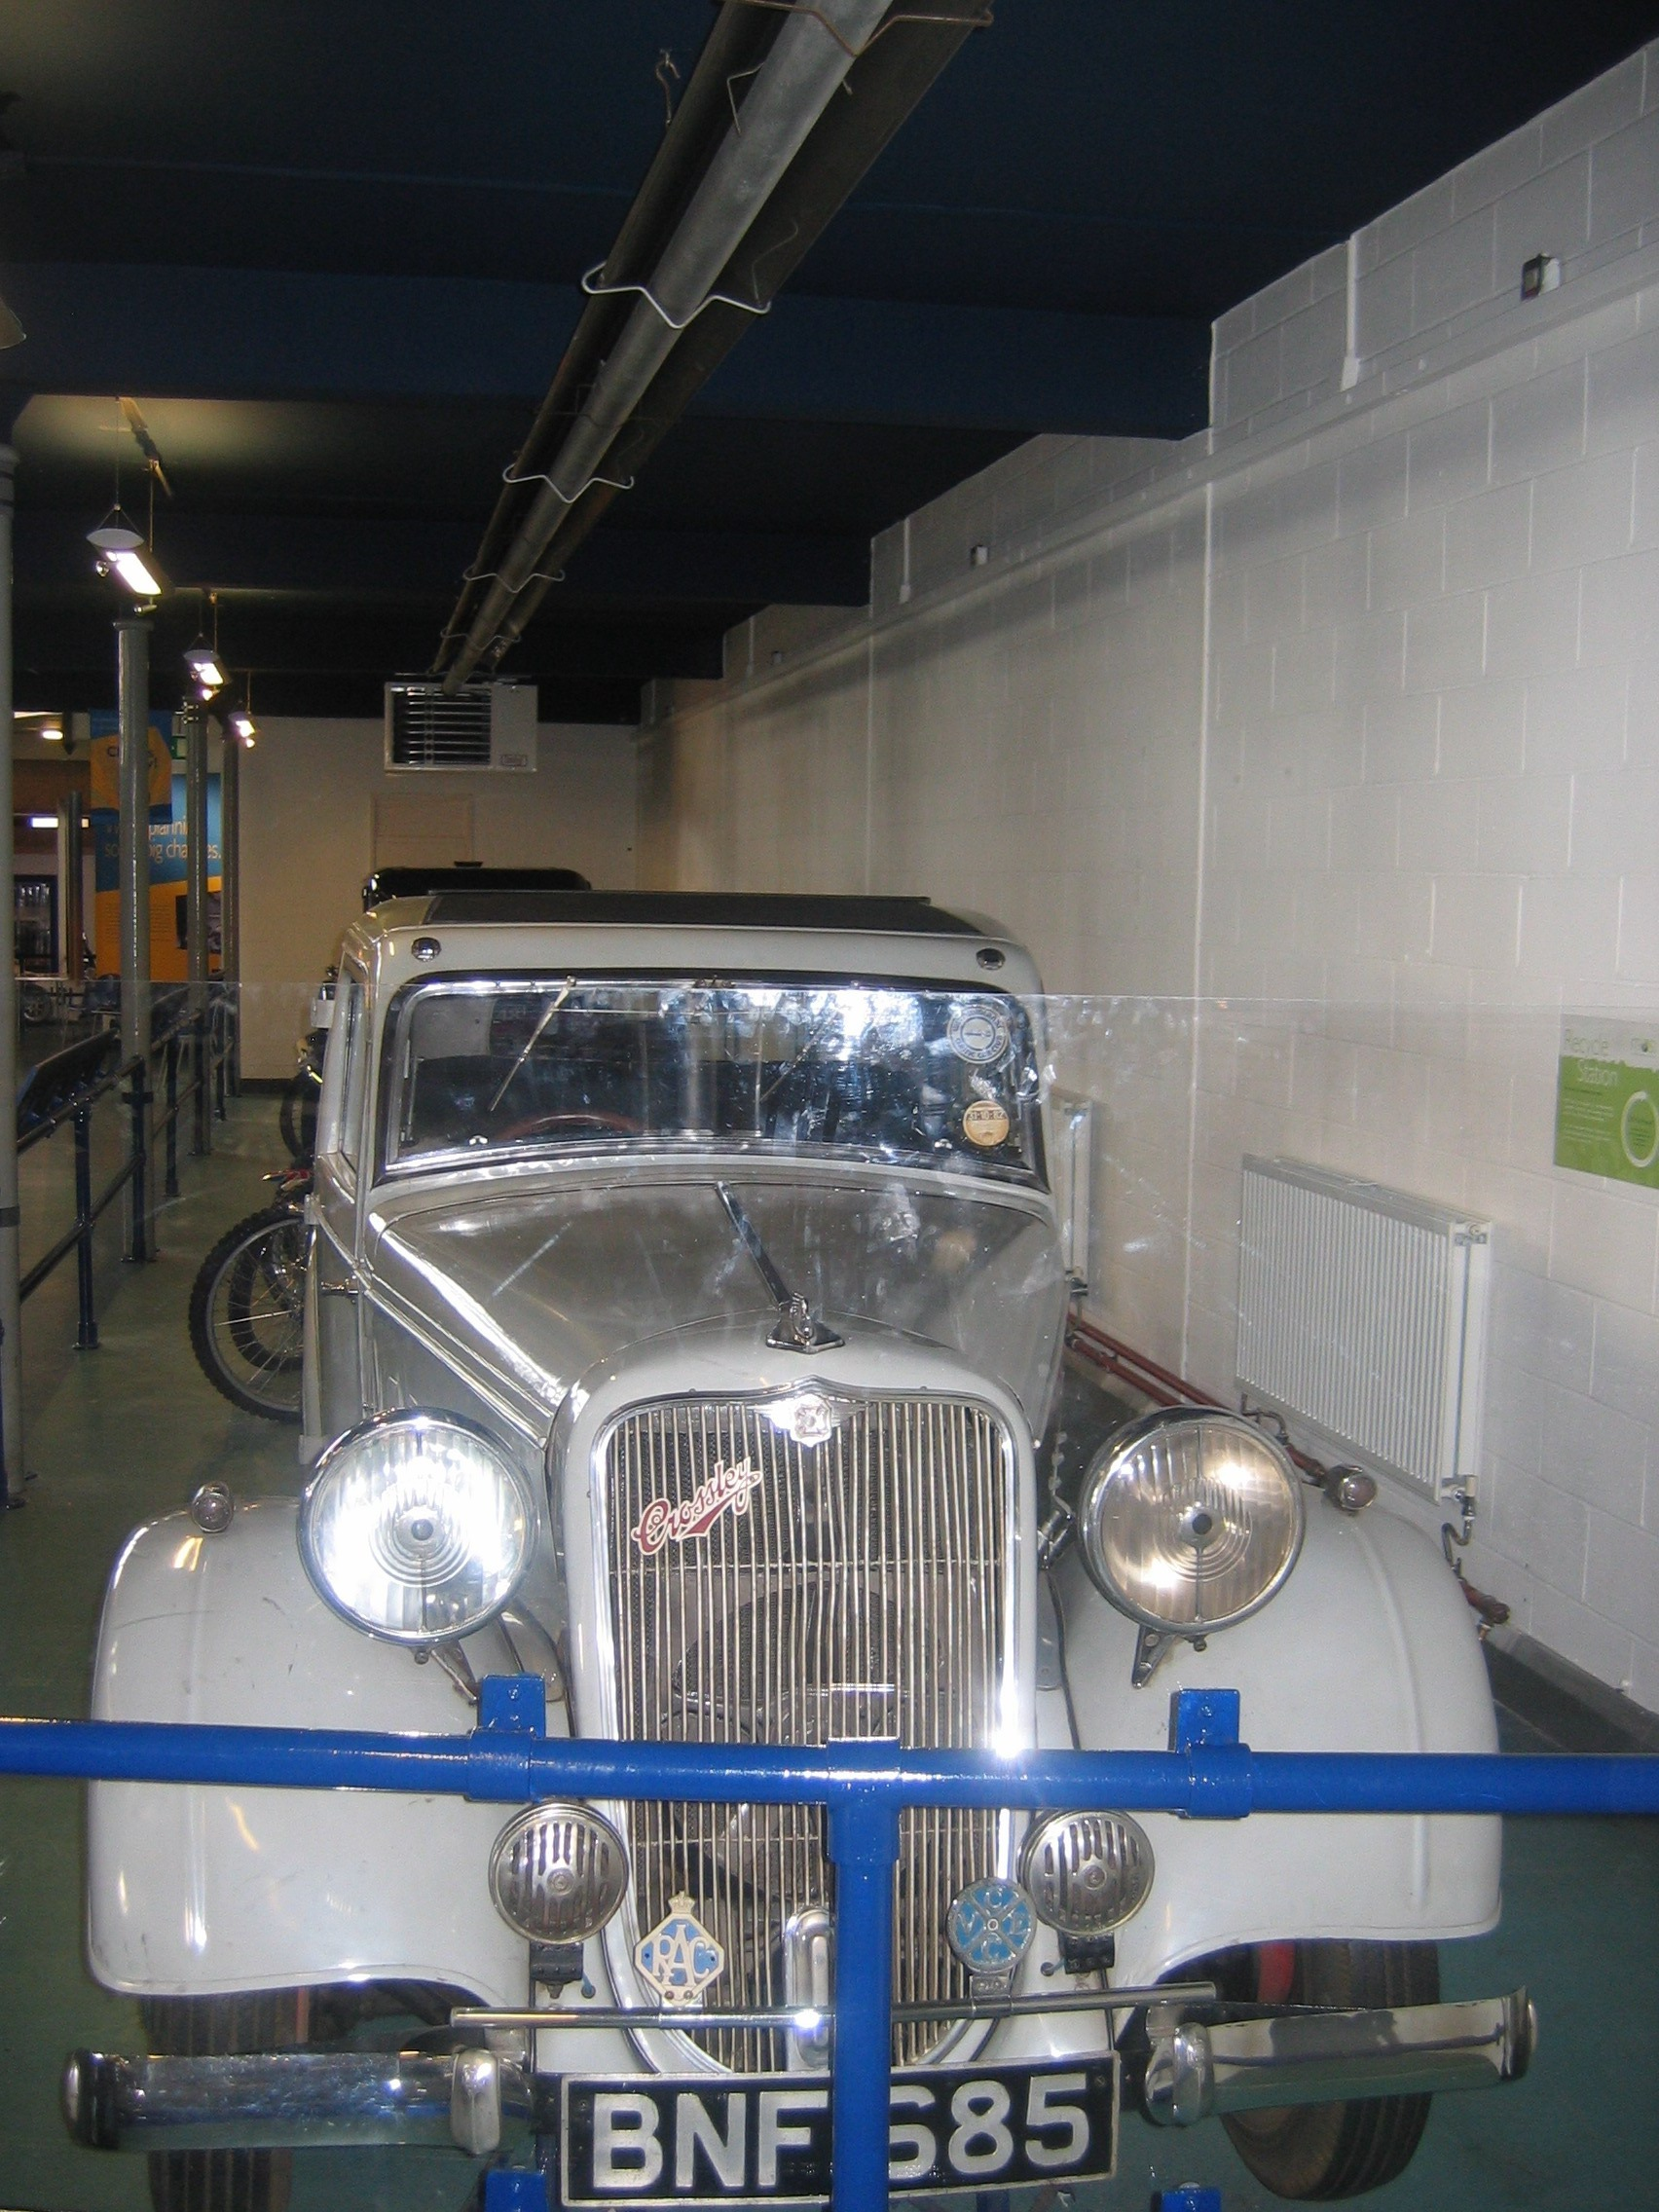 Photo taken by me – vintage car at Manchester's Museum Of Science And Industry